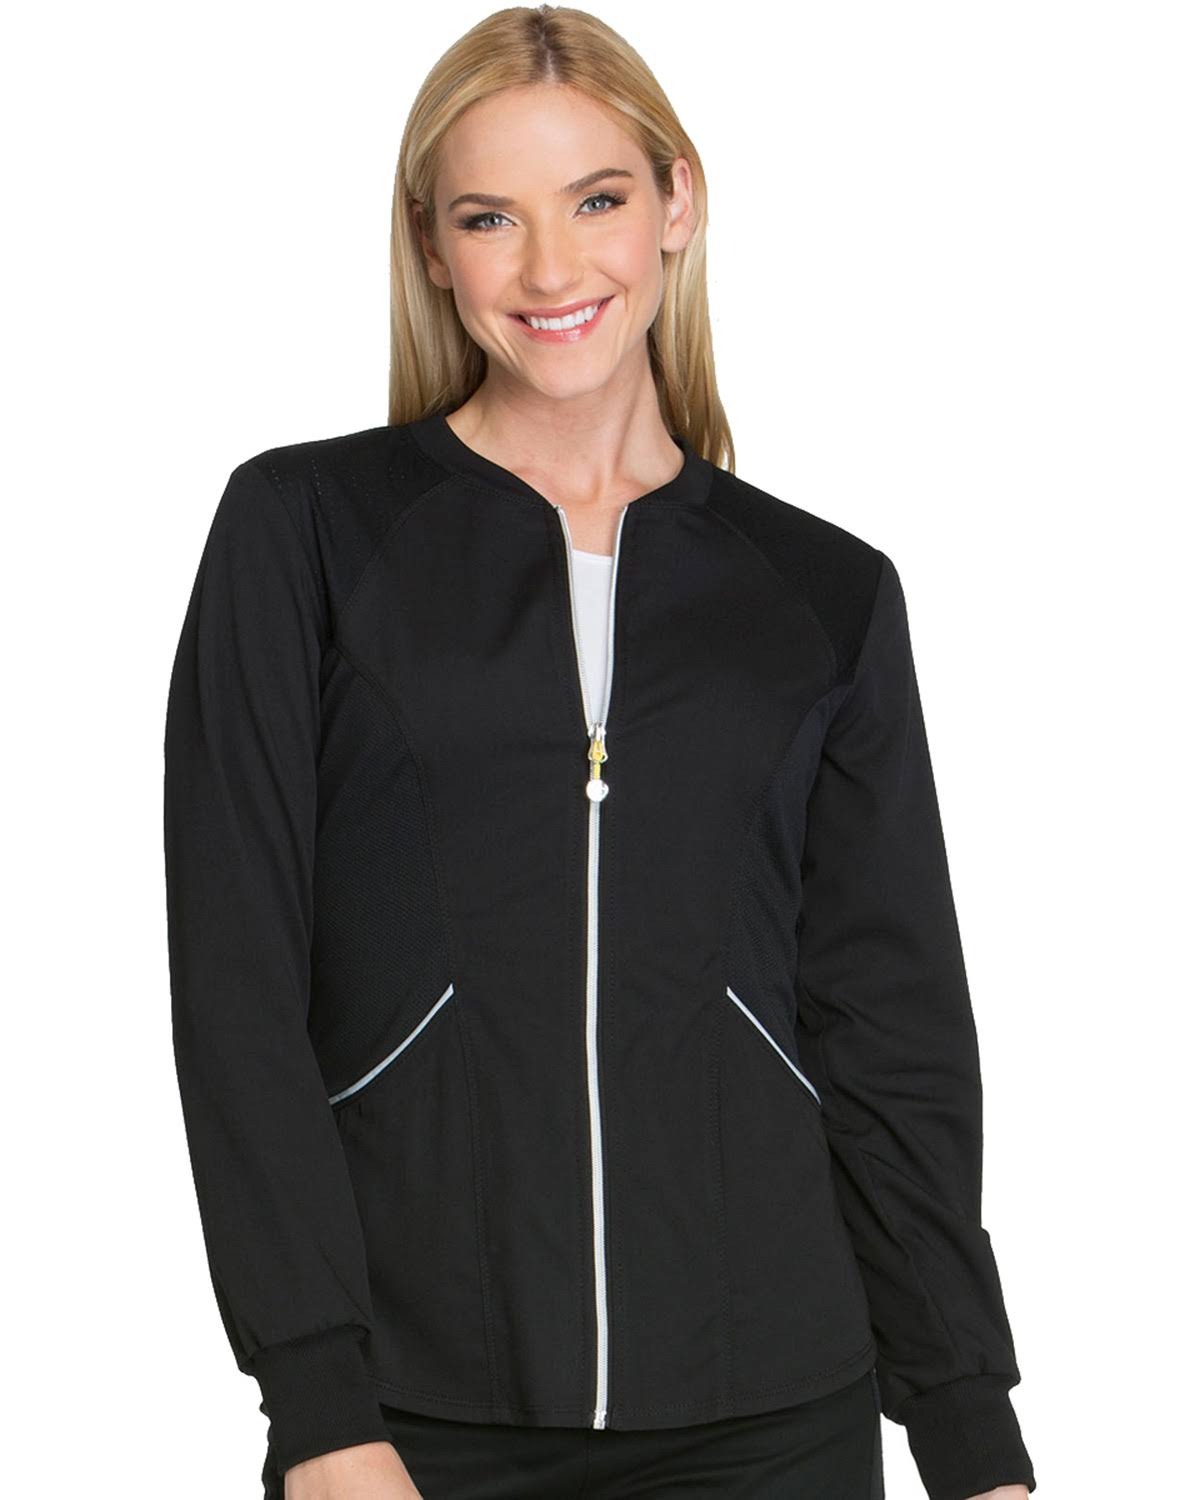 Cherokee Women's Luxe Sport Zip Front Warm-Up Jacket, Black, 2XL